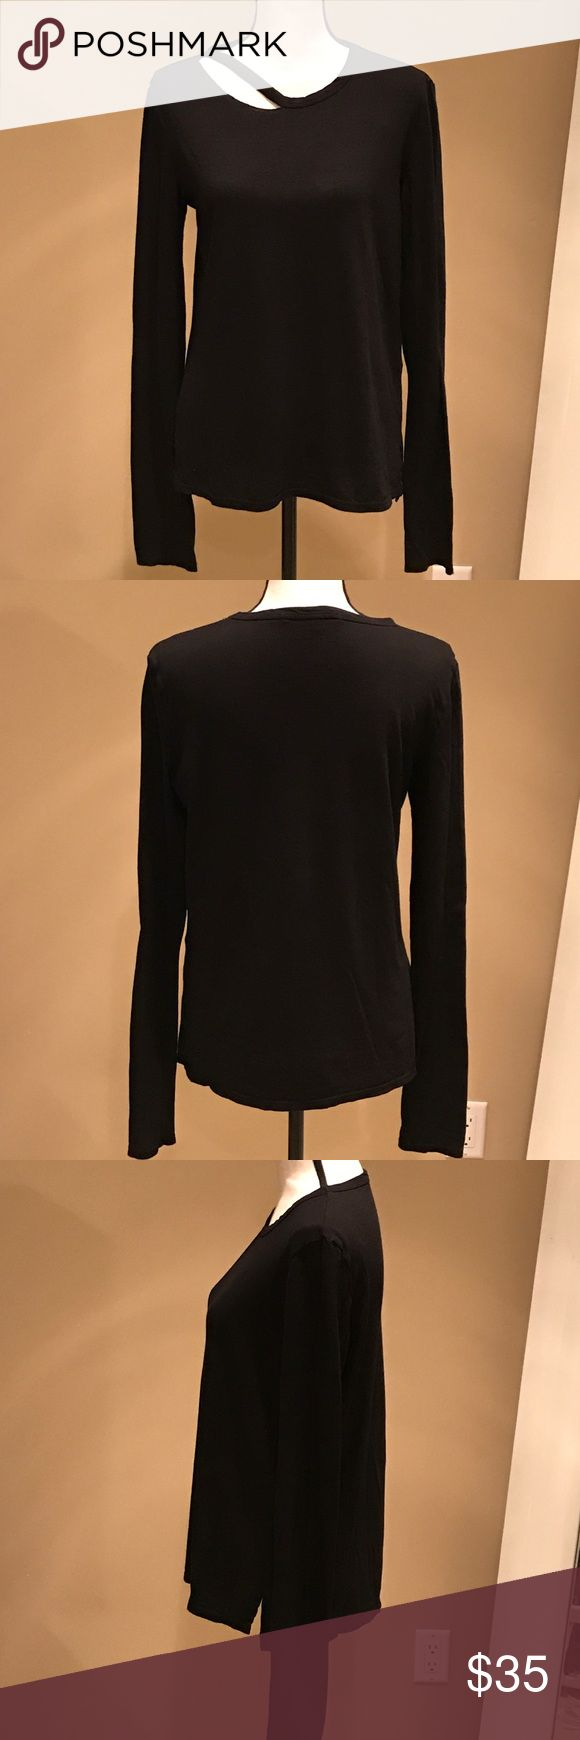 Pam & Gela Long Sleeve T-Shirt Pam & Gela Black Long Sleeve T-Shirt with ripped/cutout detail at neck with side slits. Very comfortable and cozy. Size Large but fits more like a Medium.   Worn Once. Great Condition. Pam & Gela Tops Tees - Long Sleeve